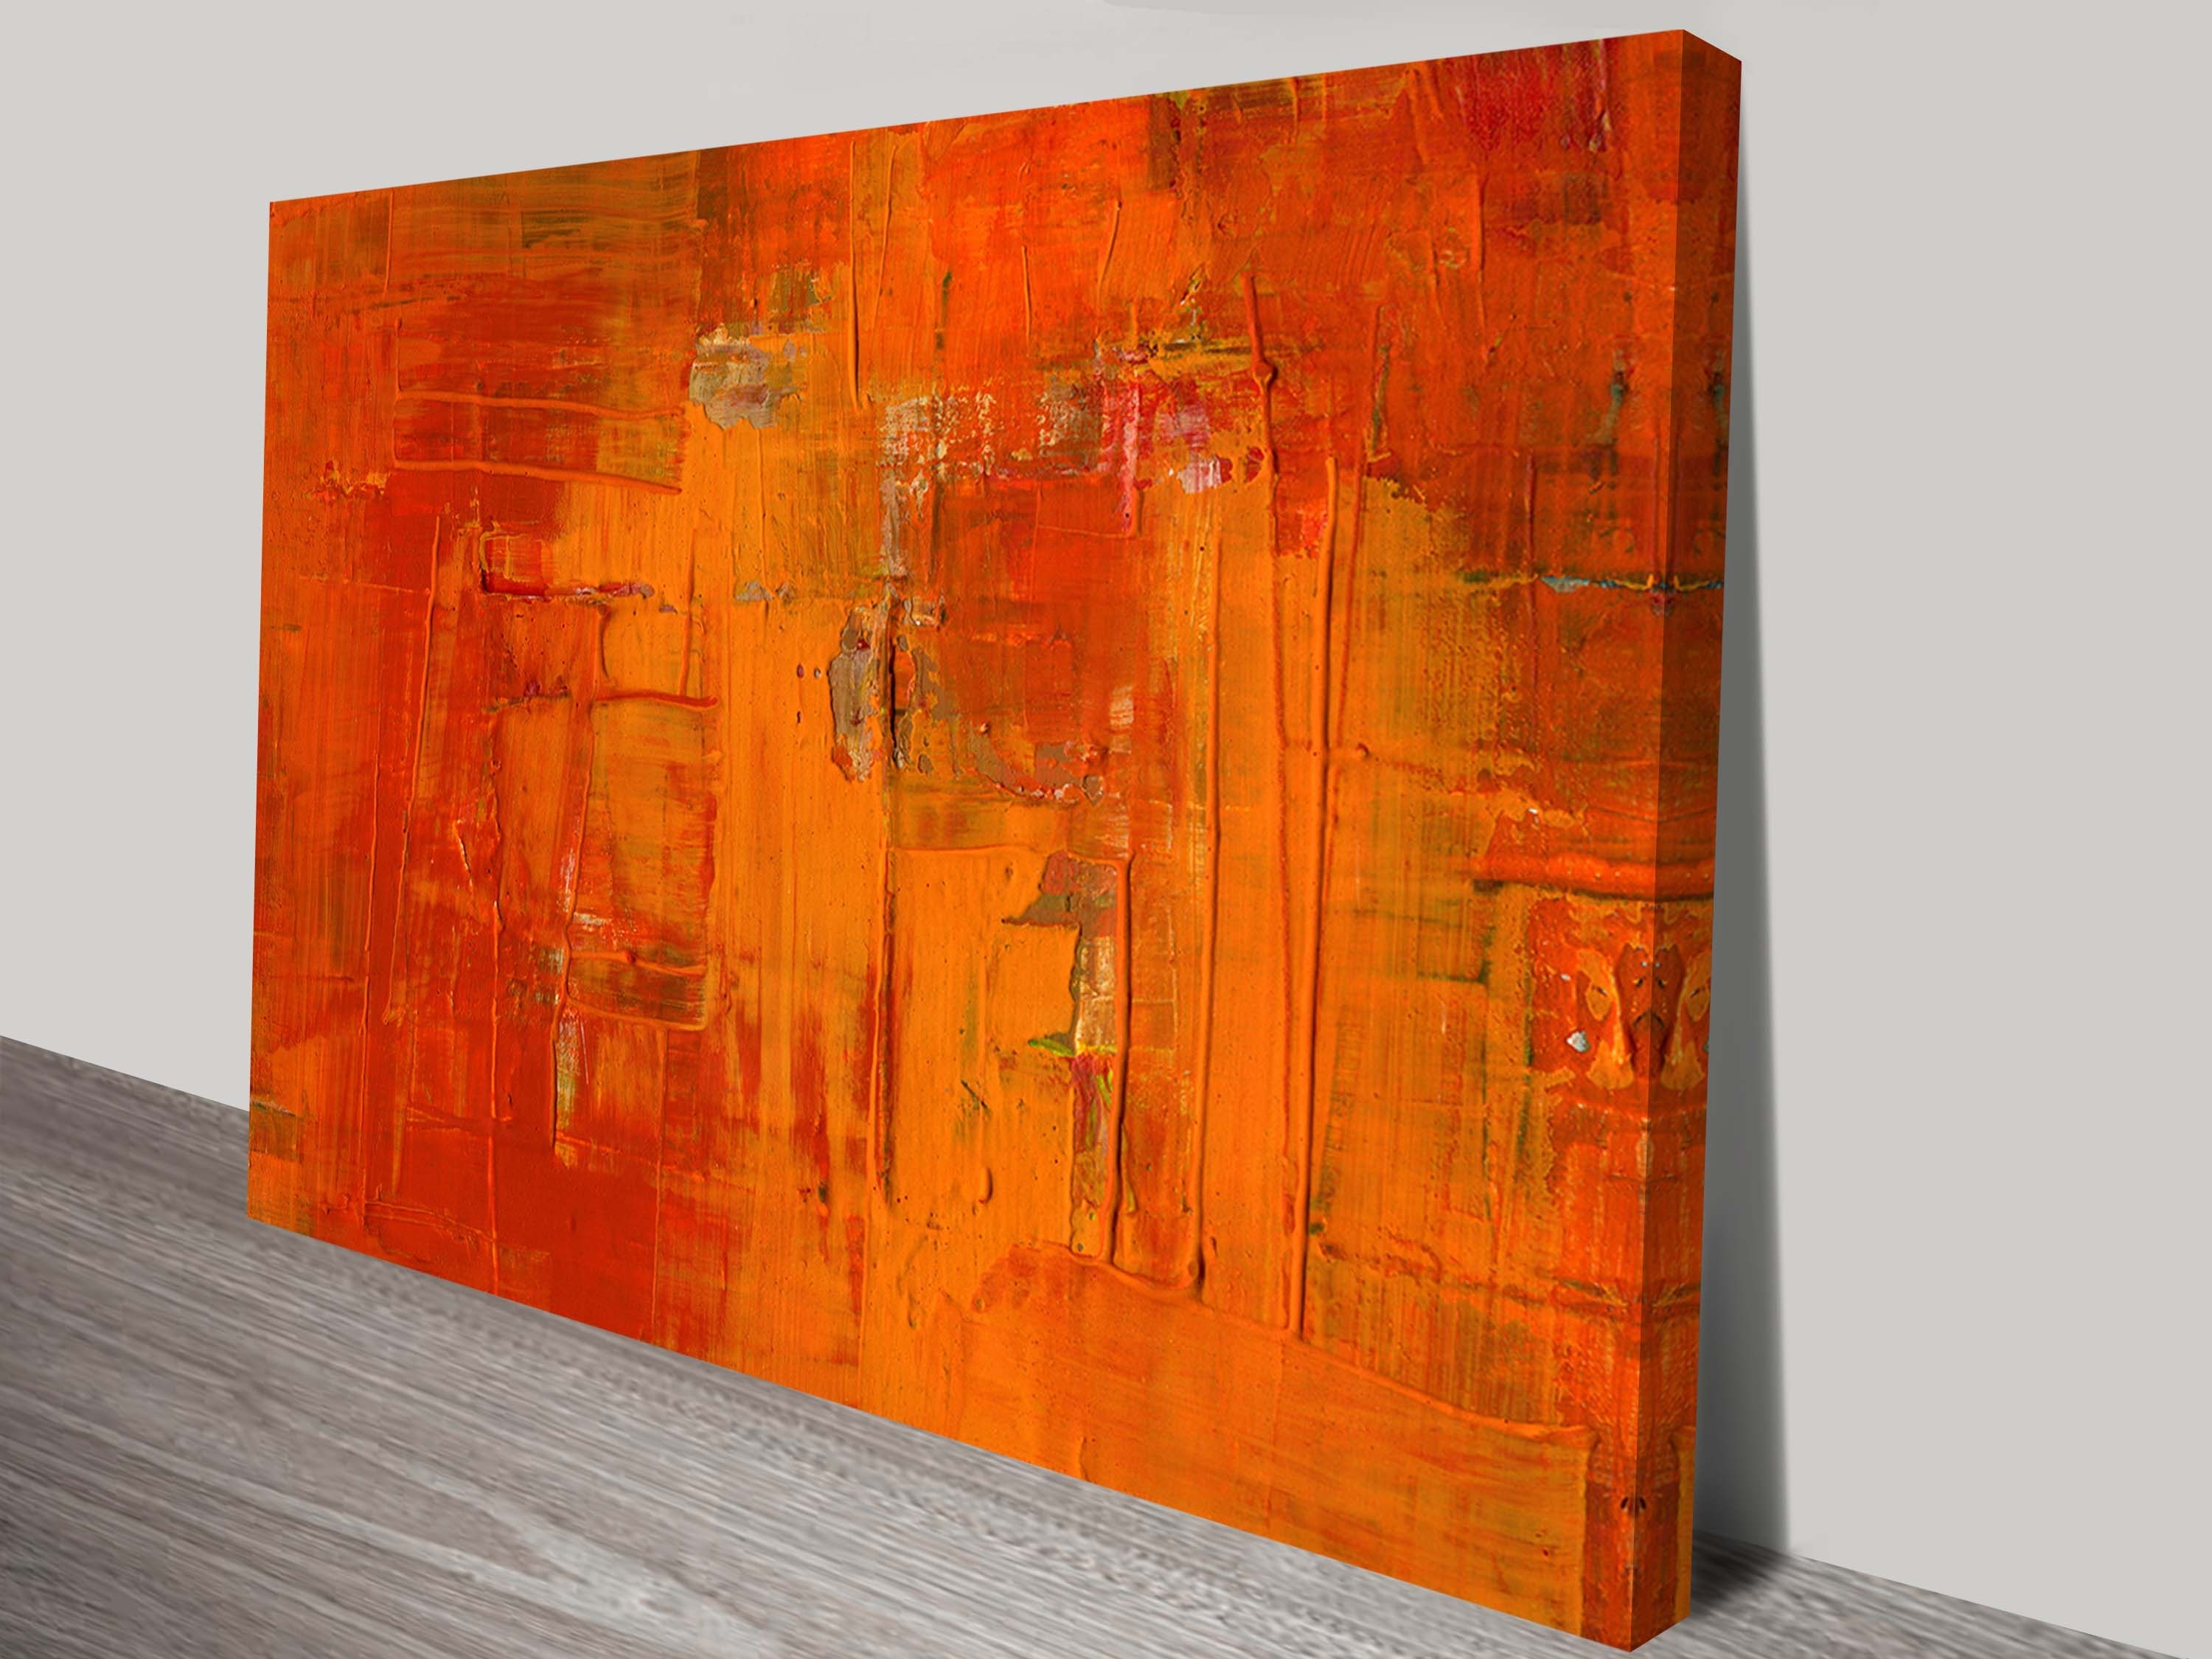 Painted Fire Abstract And Contemporary Art Intended For Abstract Canvas Wall Art (View 19 of 20)